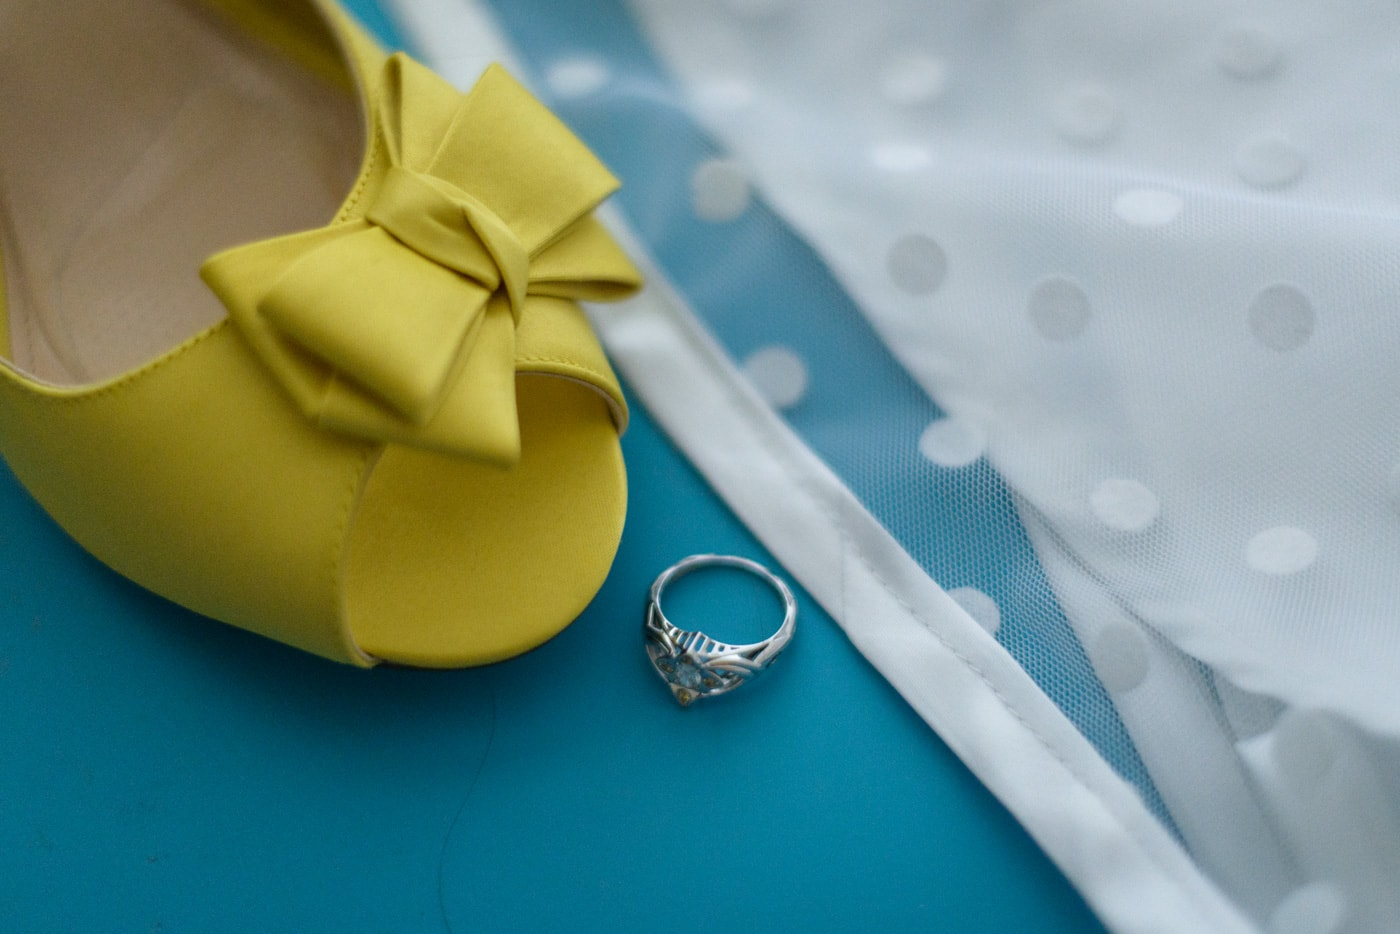 Detail of bride's yellow shoes, polka dot dress and silver ring in fairfax, virginia